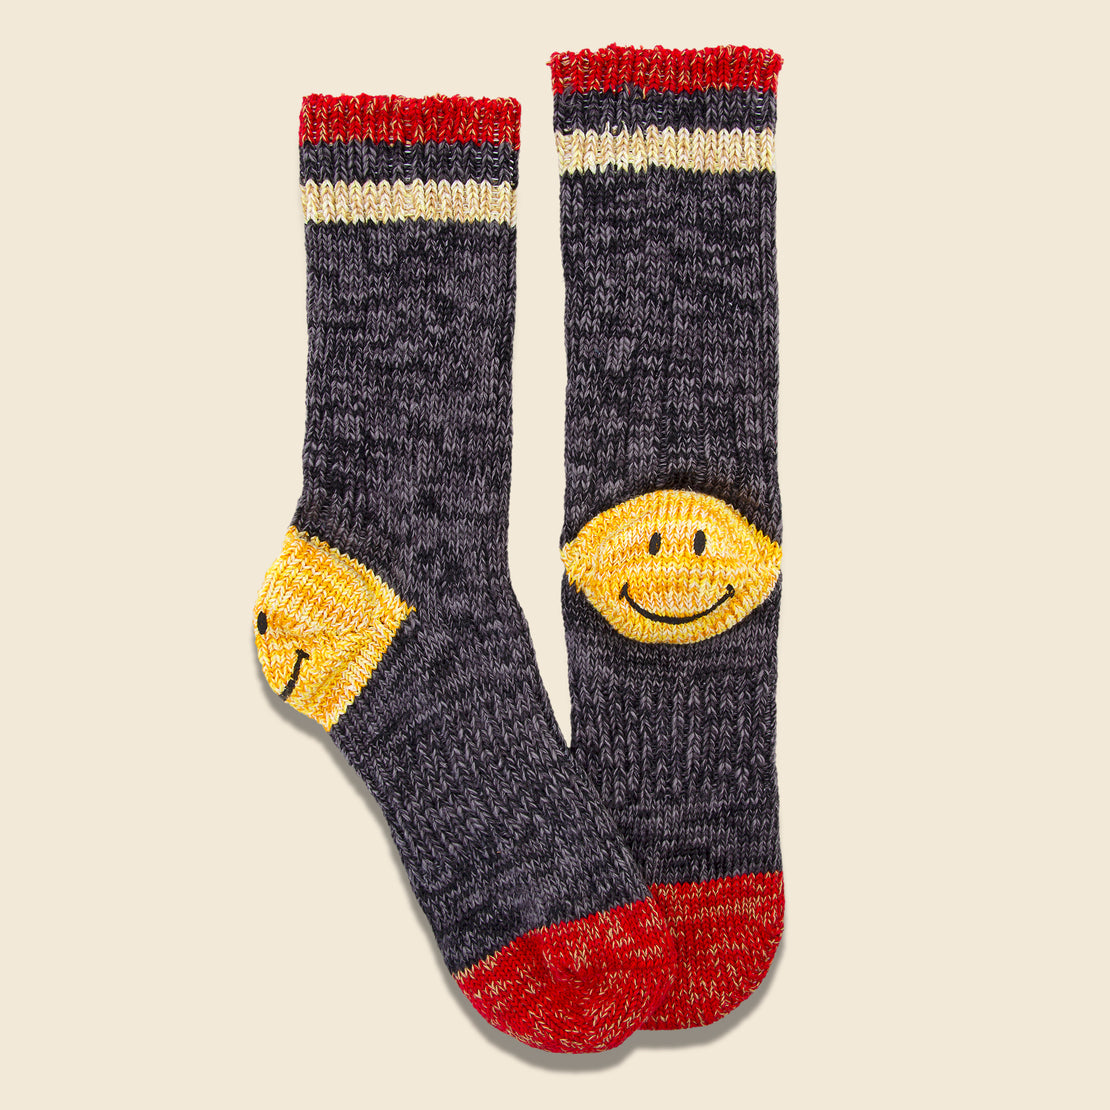 64 Yarns Ivy Smile Heel Hold Socks - Grey